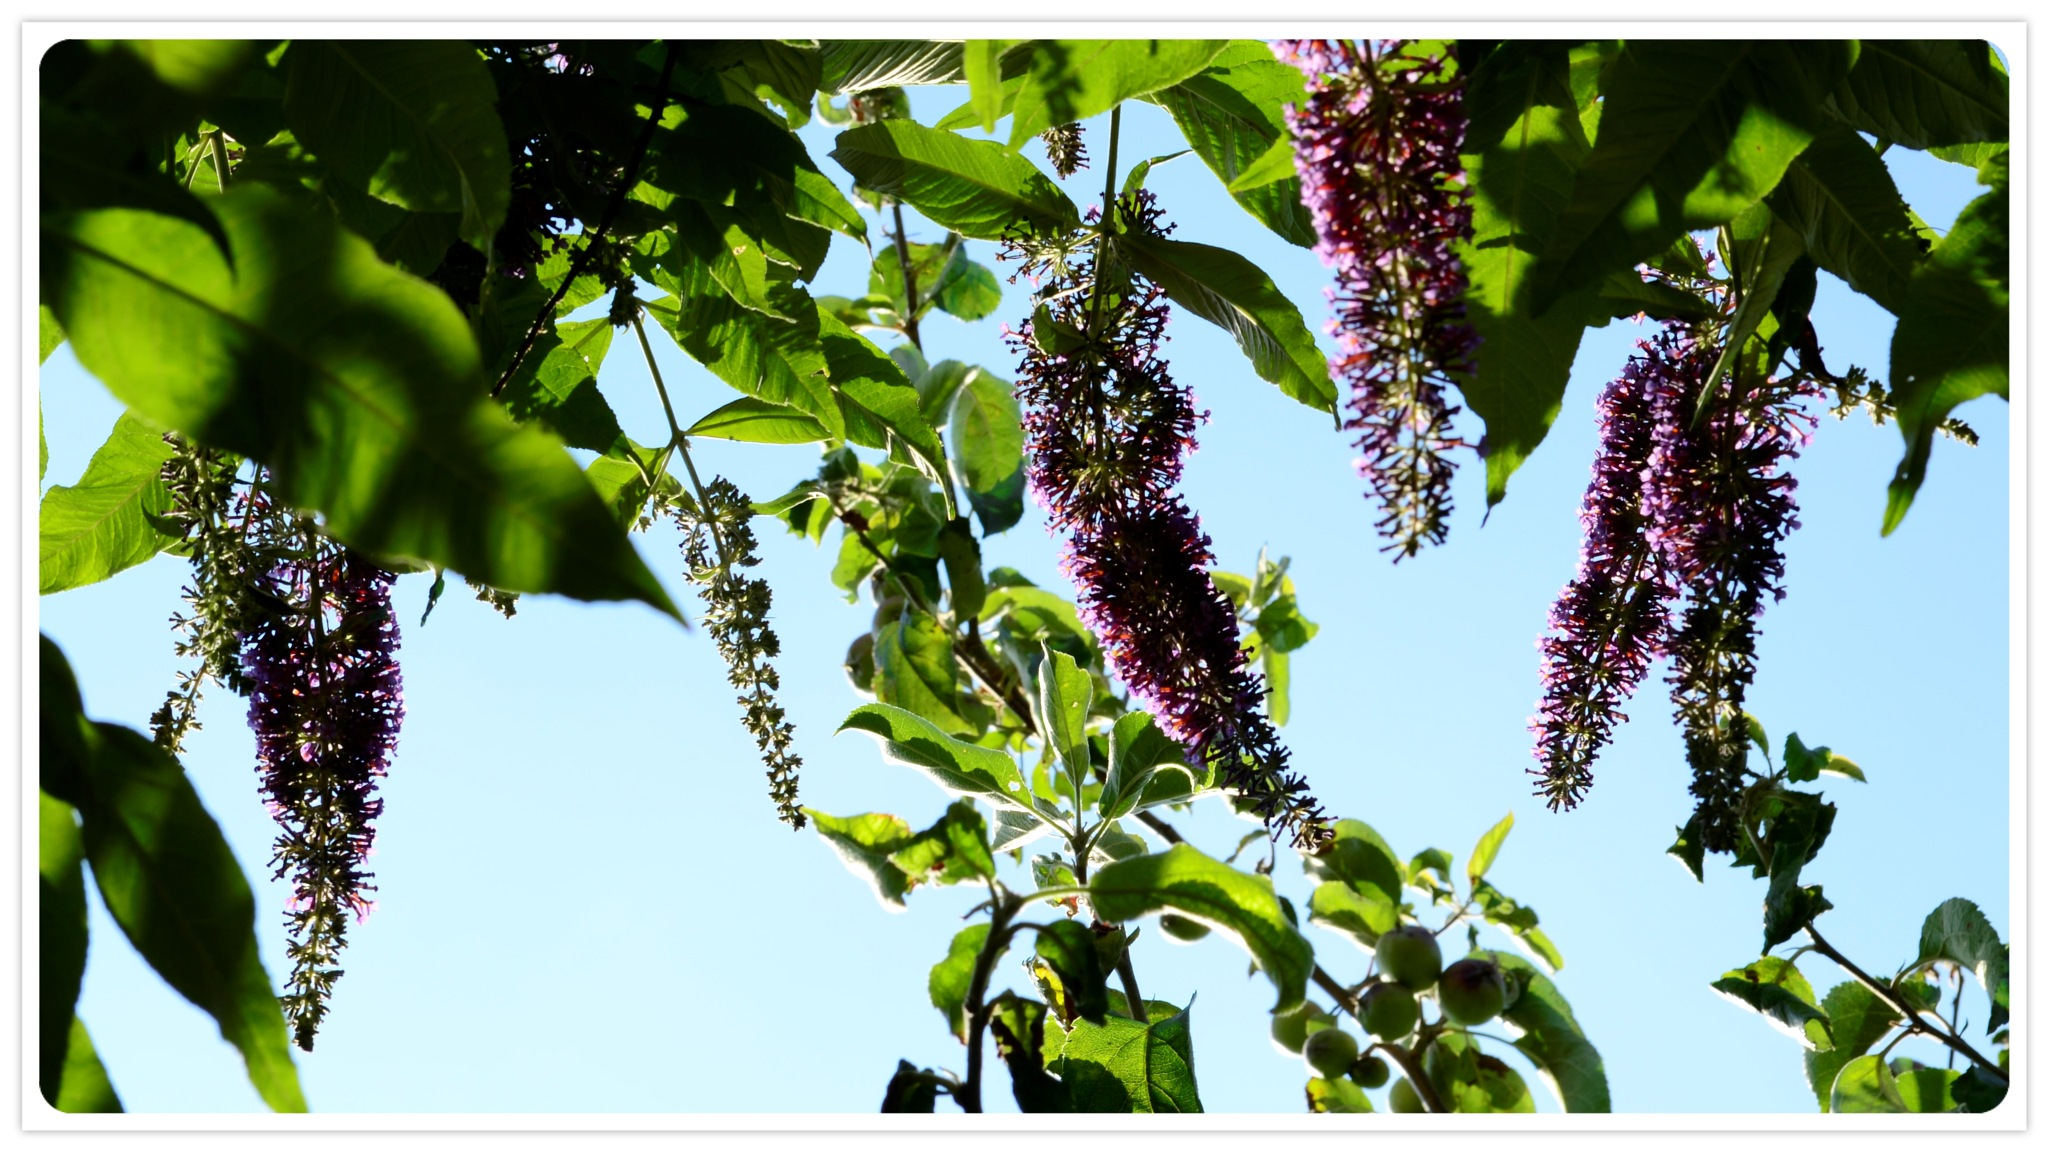 Butterfly bush by Kevin Armsby